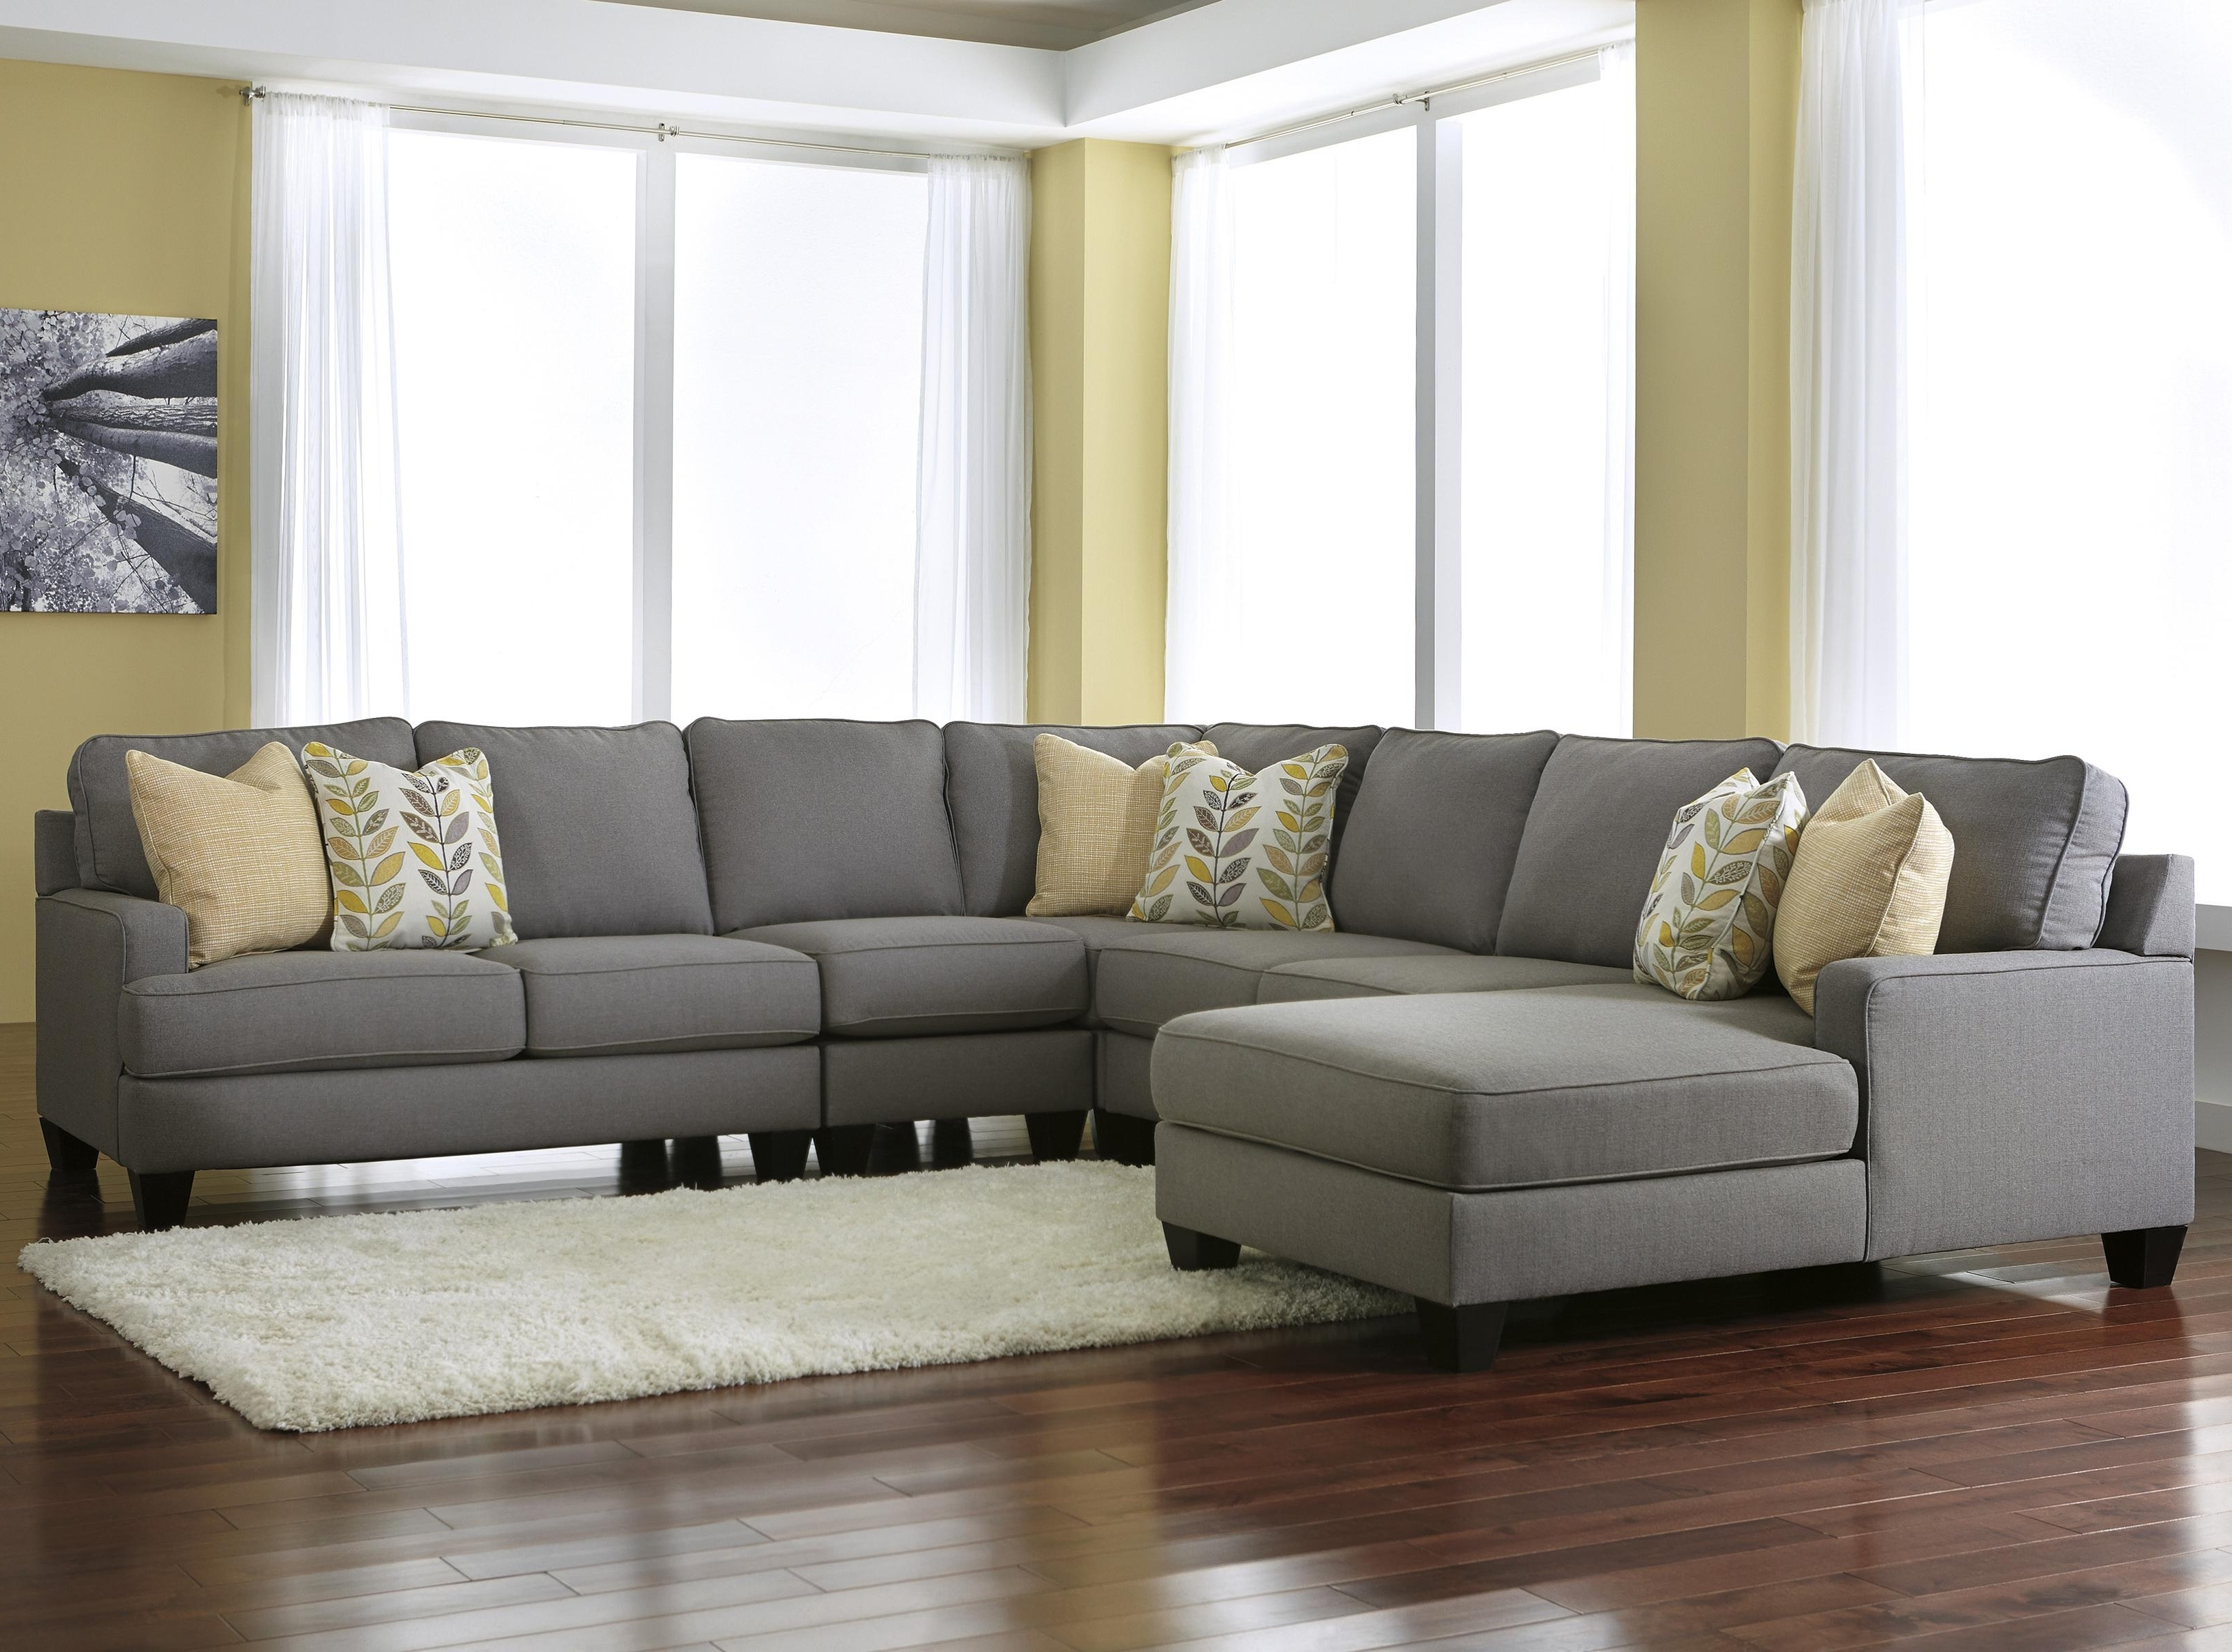 Signature Designashley Chamberly – Alloy Modern 5 Piece Within Newest Johnson City Tn Sectional Sofas (View 12 of 15)